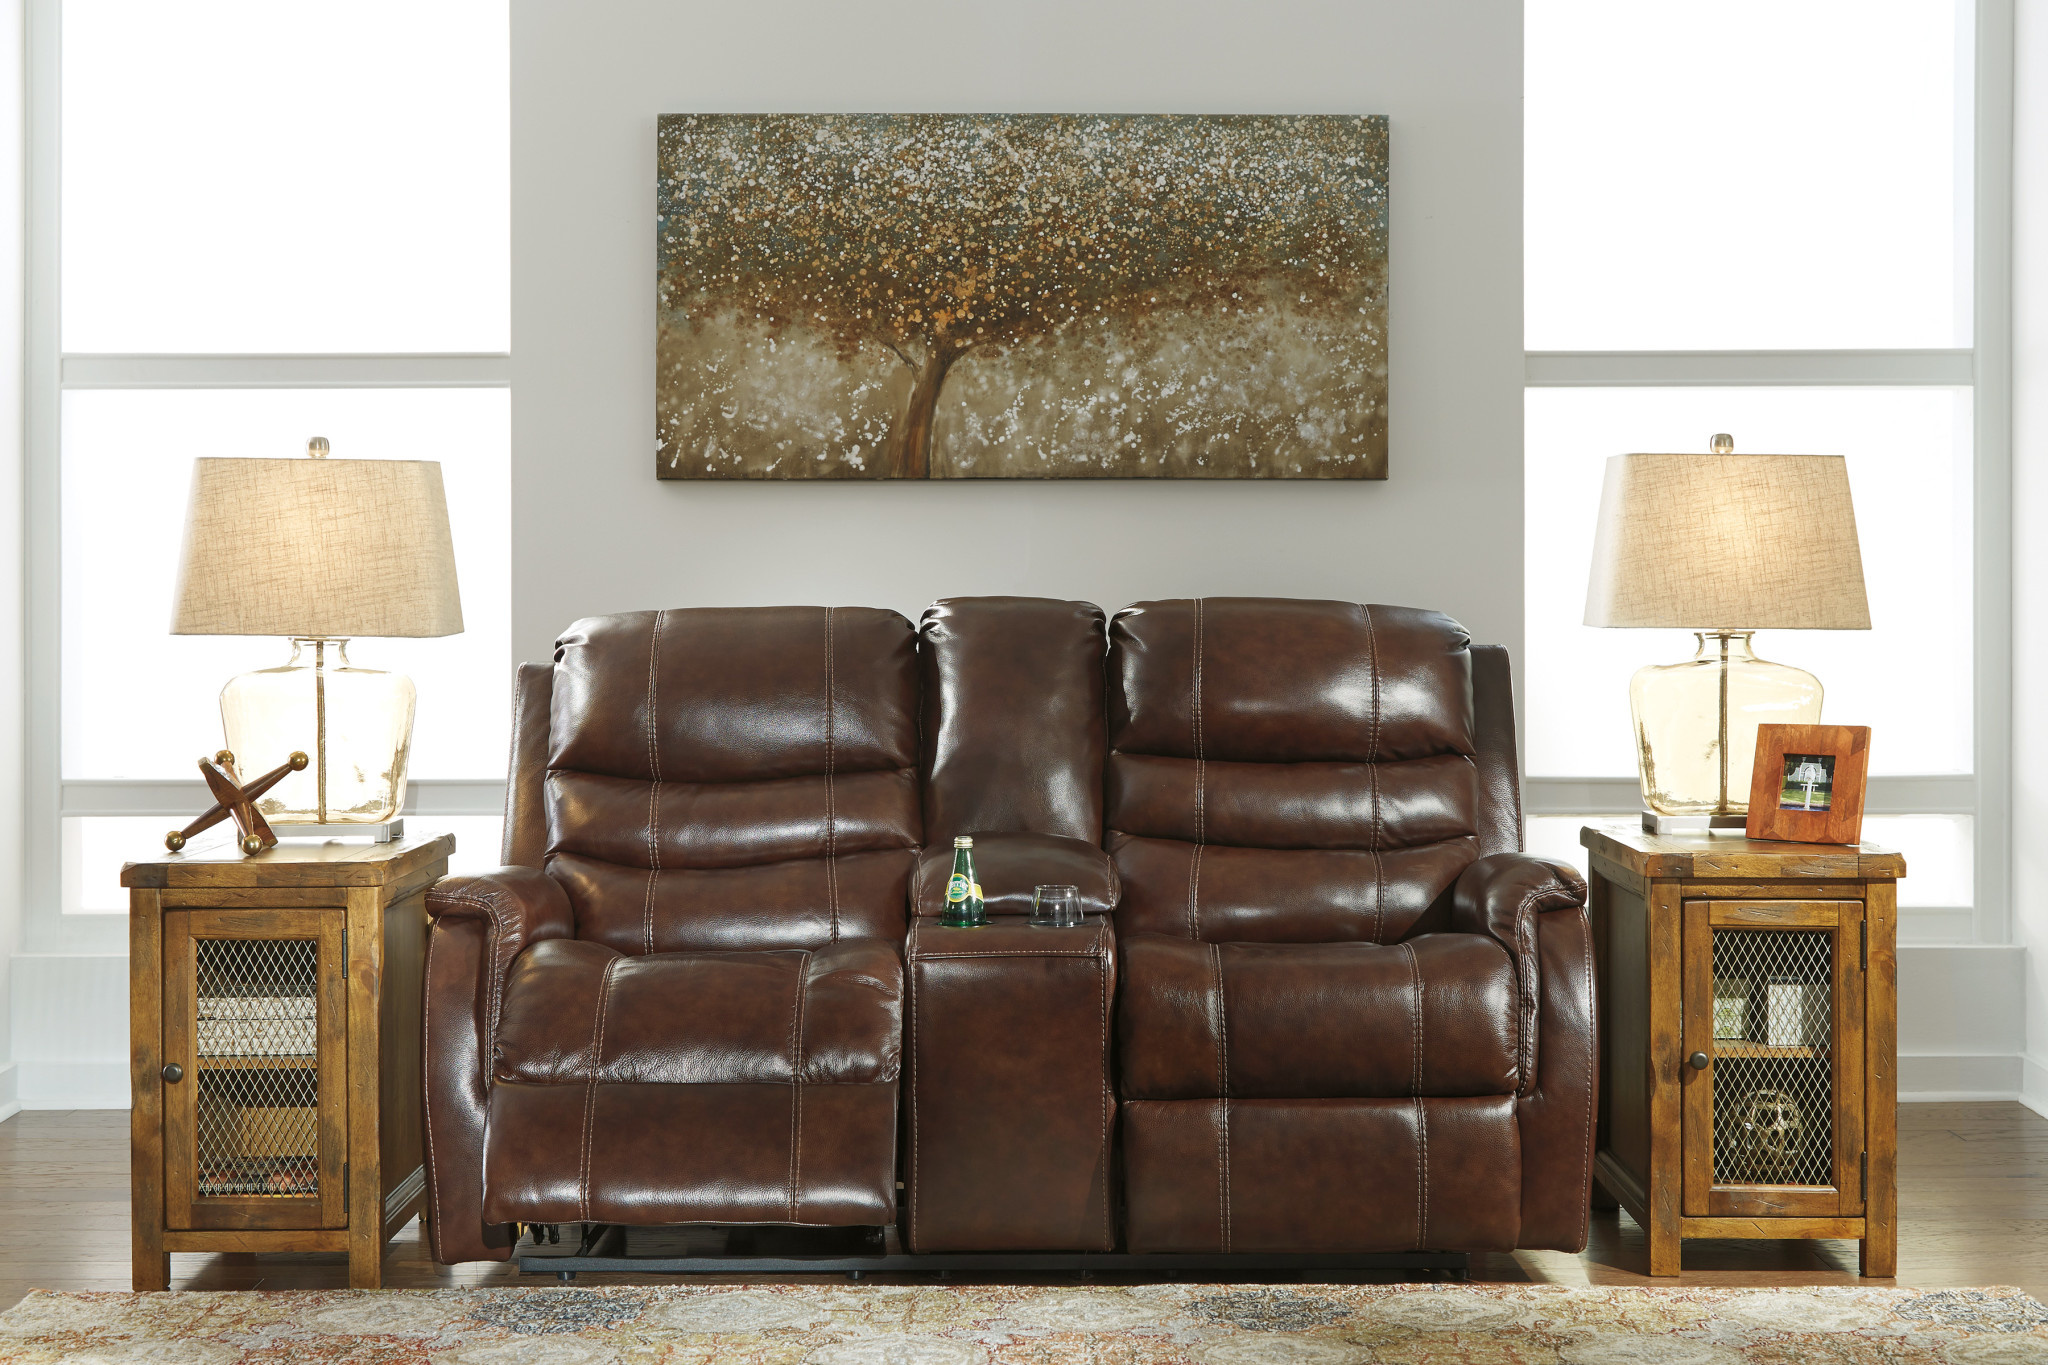 Signature Design Mineola Power Reclining Loveseat with Adj. Headrest Console w/ Cup holders 5020318